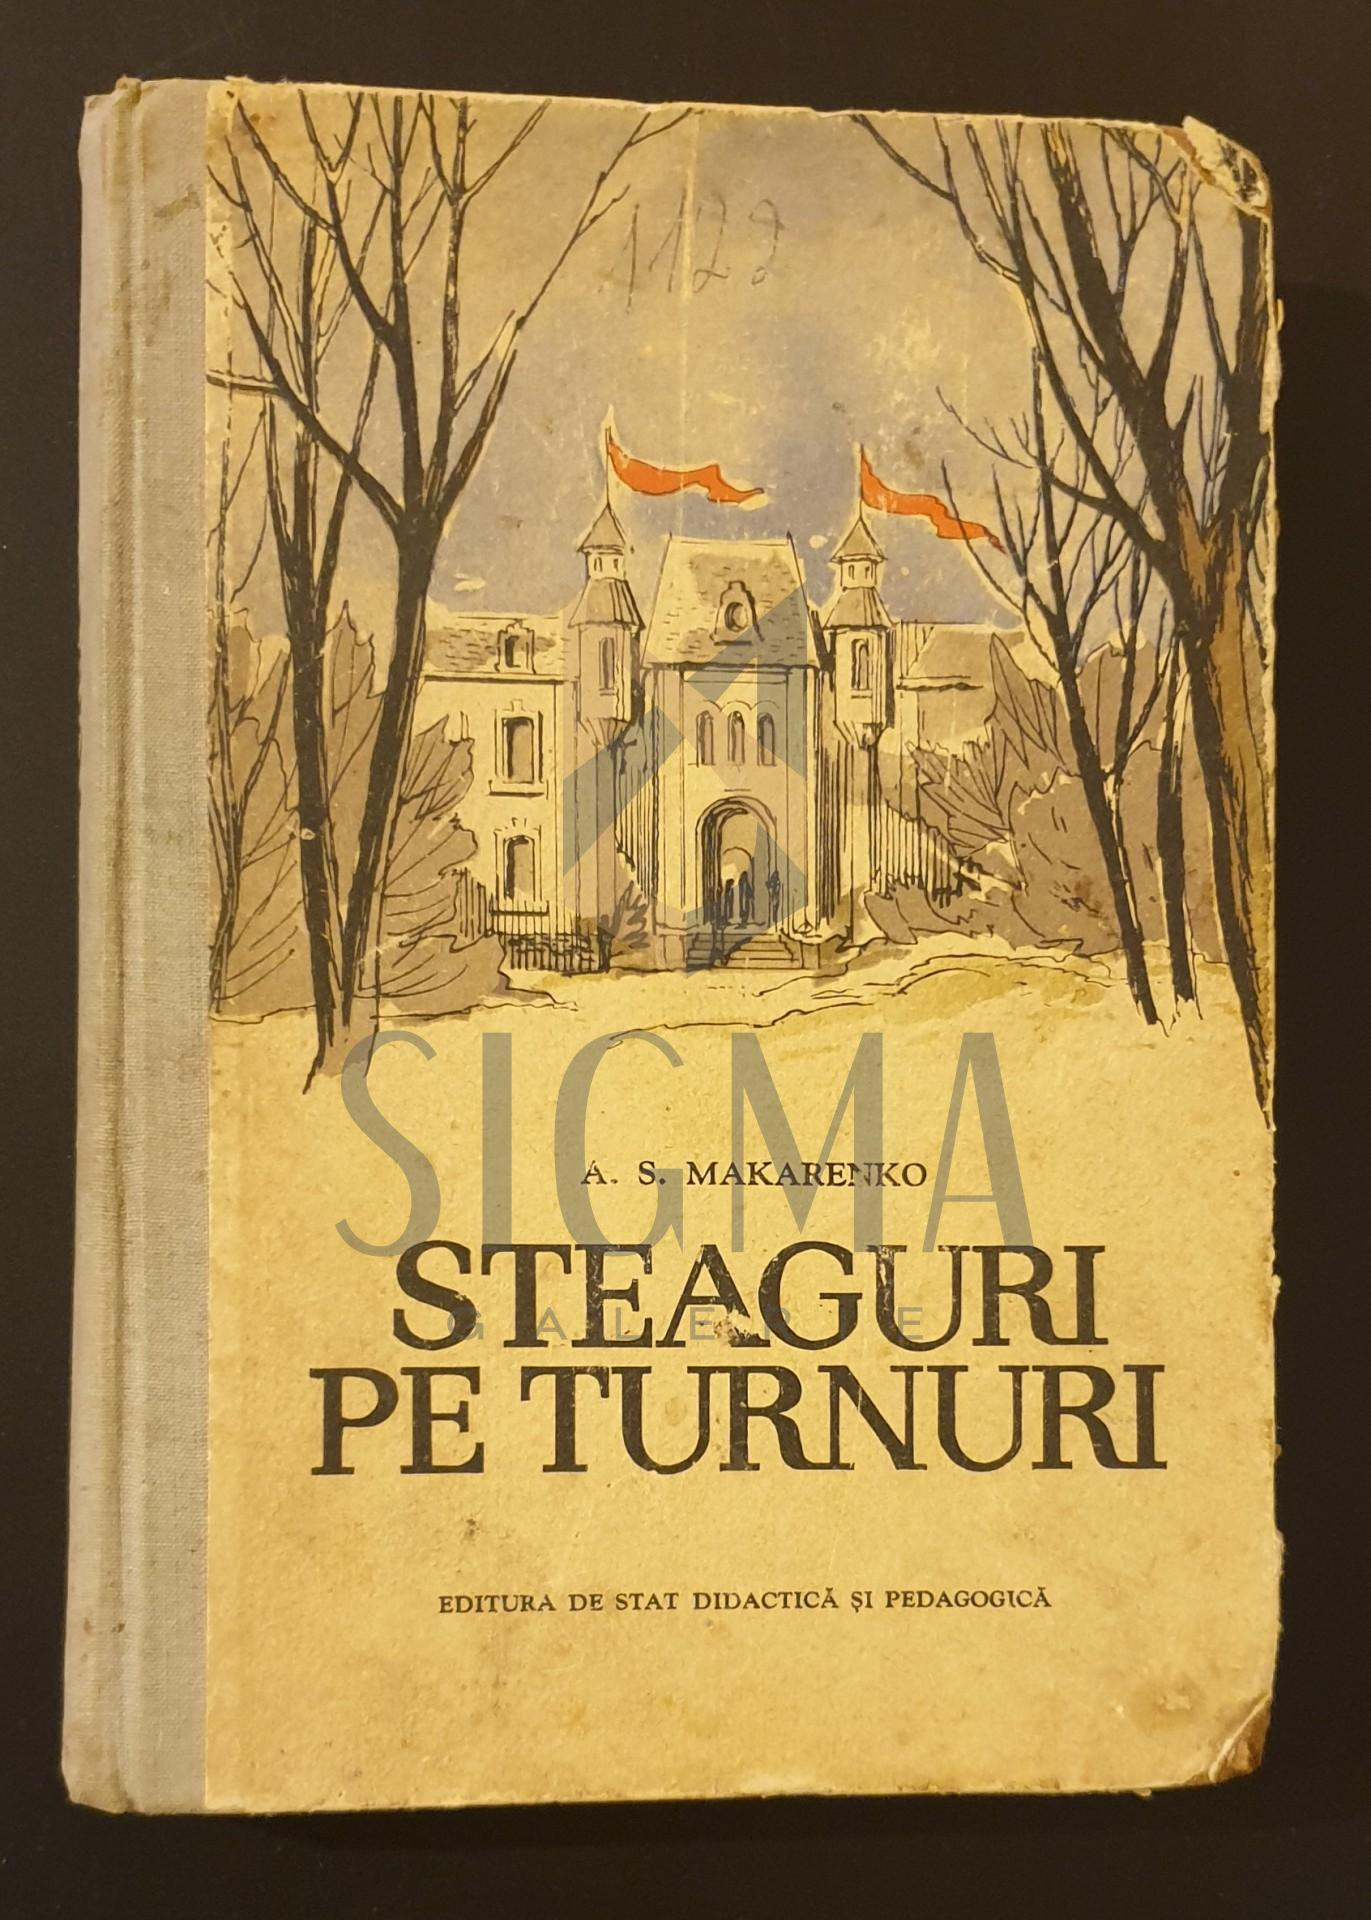 Steaguri pe turnuri